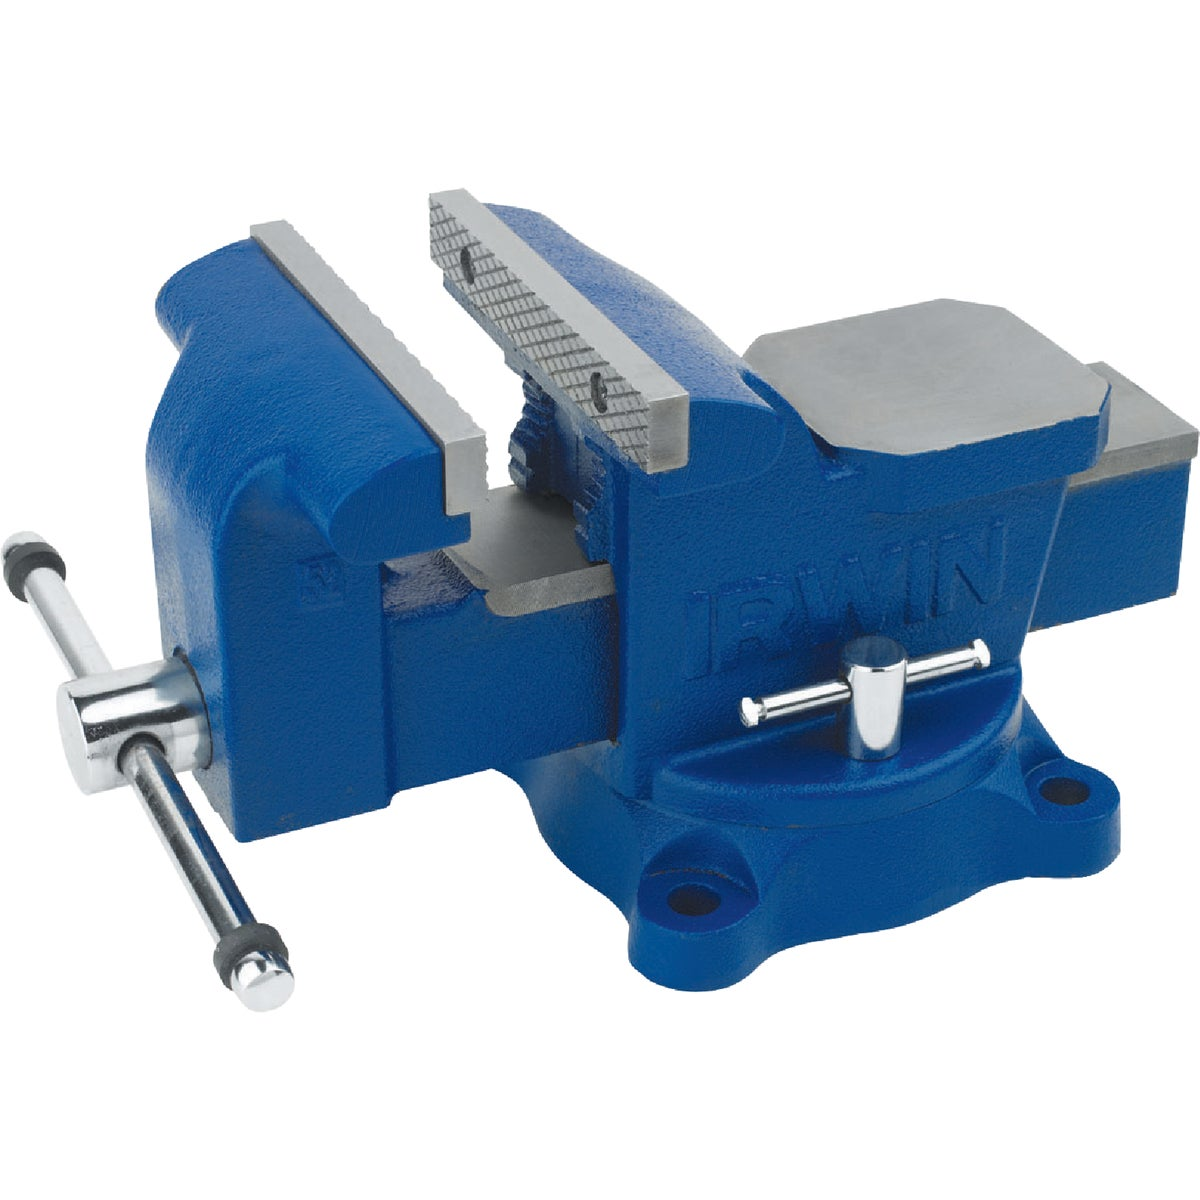 "6"" WORKSHOP BENCH VISE - 226306ZR by Irwin Industr Tool"